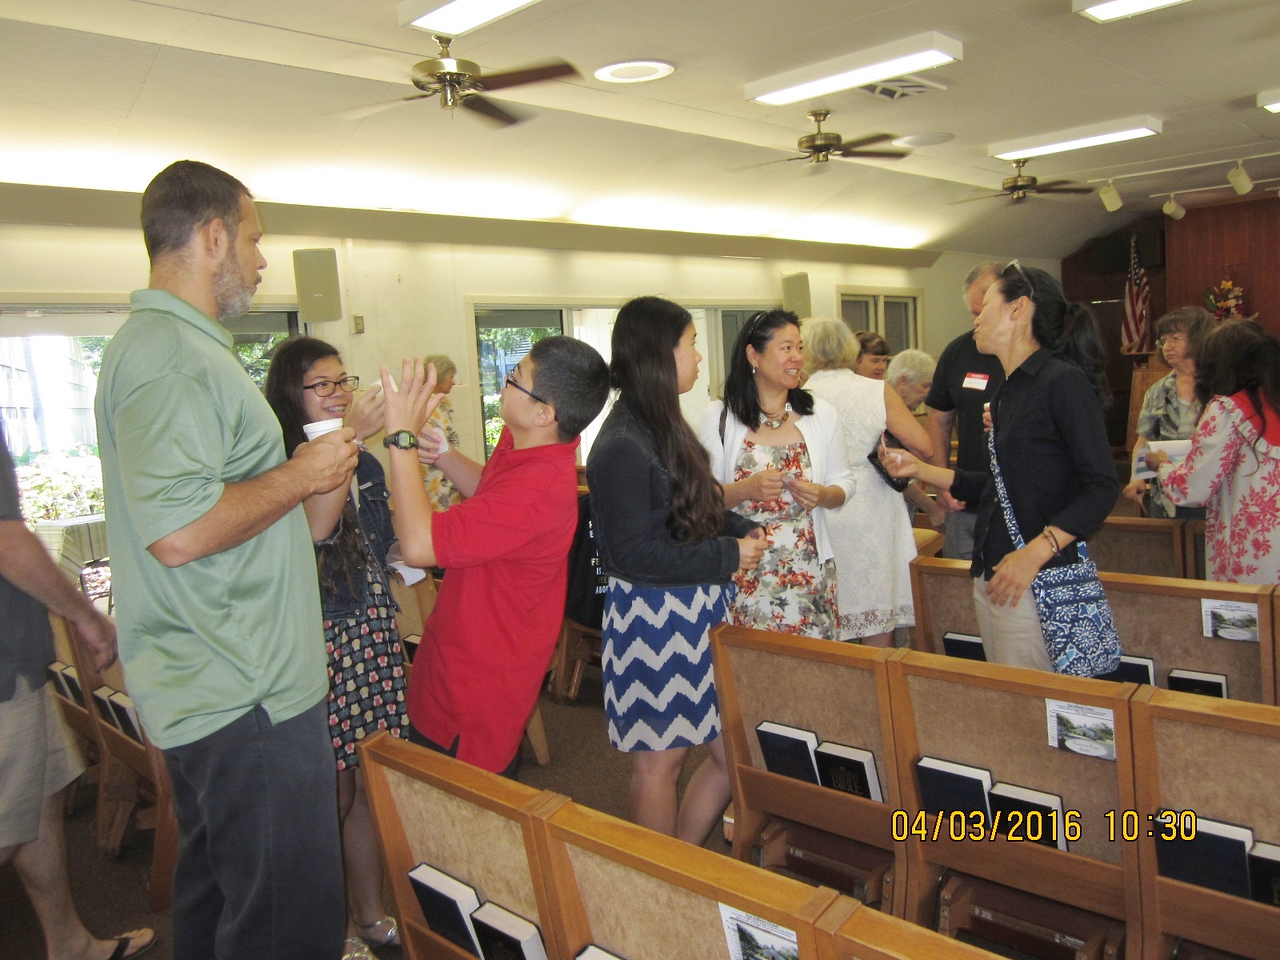 chapel famiy mingled with each other